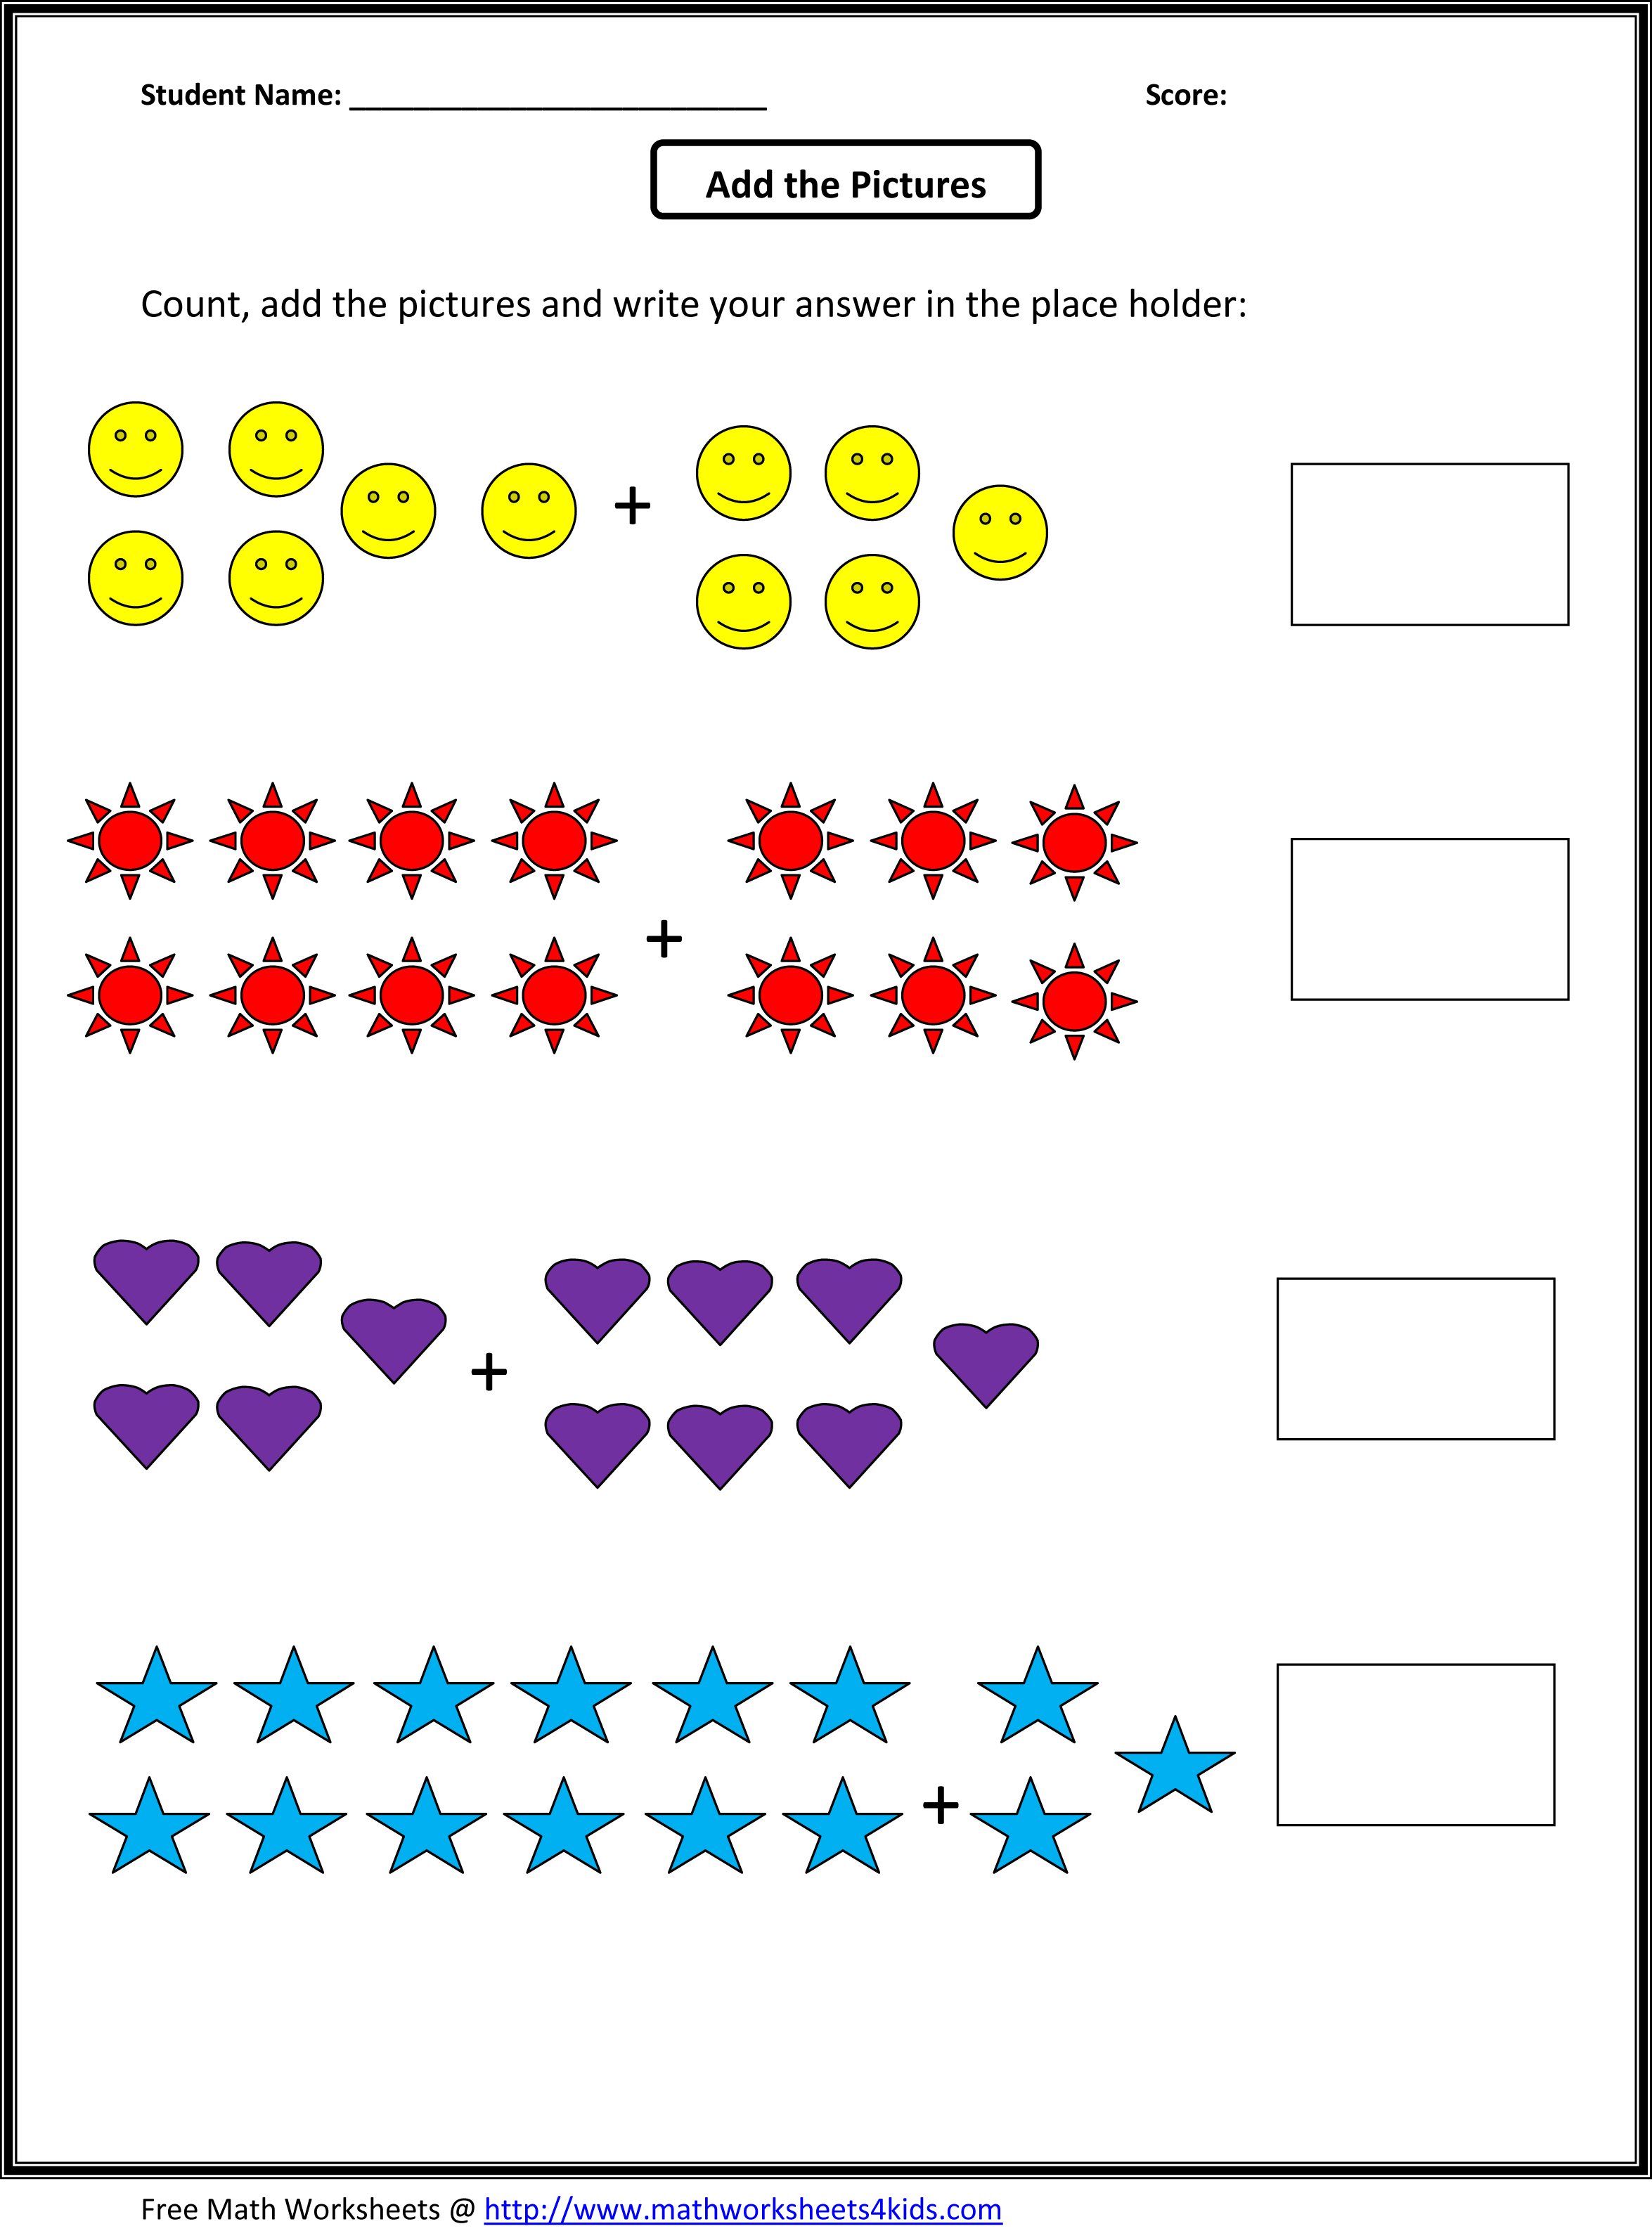 Proatmealus  Nice Grade  Maths Worksheet  Reocurent With Interesting Math Worksheets For St Grade Free  Reocurent With Amusing Writing Words Worksheets For Kindergarten Also Stop Bullying Worksheets In Addition Possessive Nouns And Pronouns Worksheets And Worksheets On Adjectives For Grade  As Well As Simple Reflection Worksheets Additionally Street Safety Worksheets From Reocurentcom With Proatmealus  Interesting Grade  Maths Worksheet  Reocurent With Amusing Math Worksheets For St Grade Free  Reocurent And Nice Writing Words Worksheets For Kindergarten Also Stop Bullying Worksheets In Addition Possessive Nouns And Pronouns Worksheets From Reocurentcom